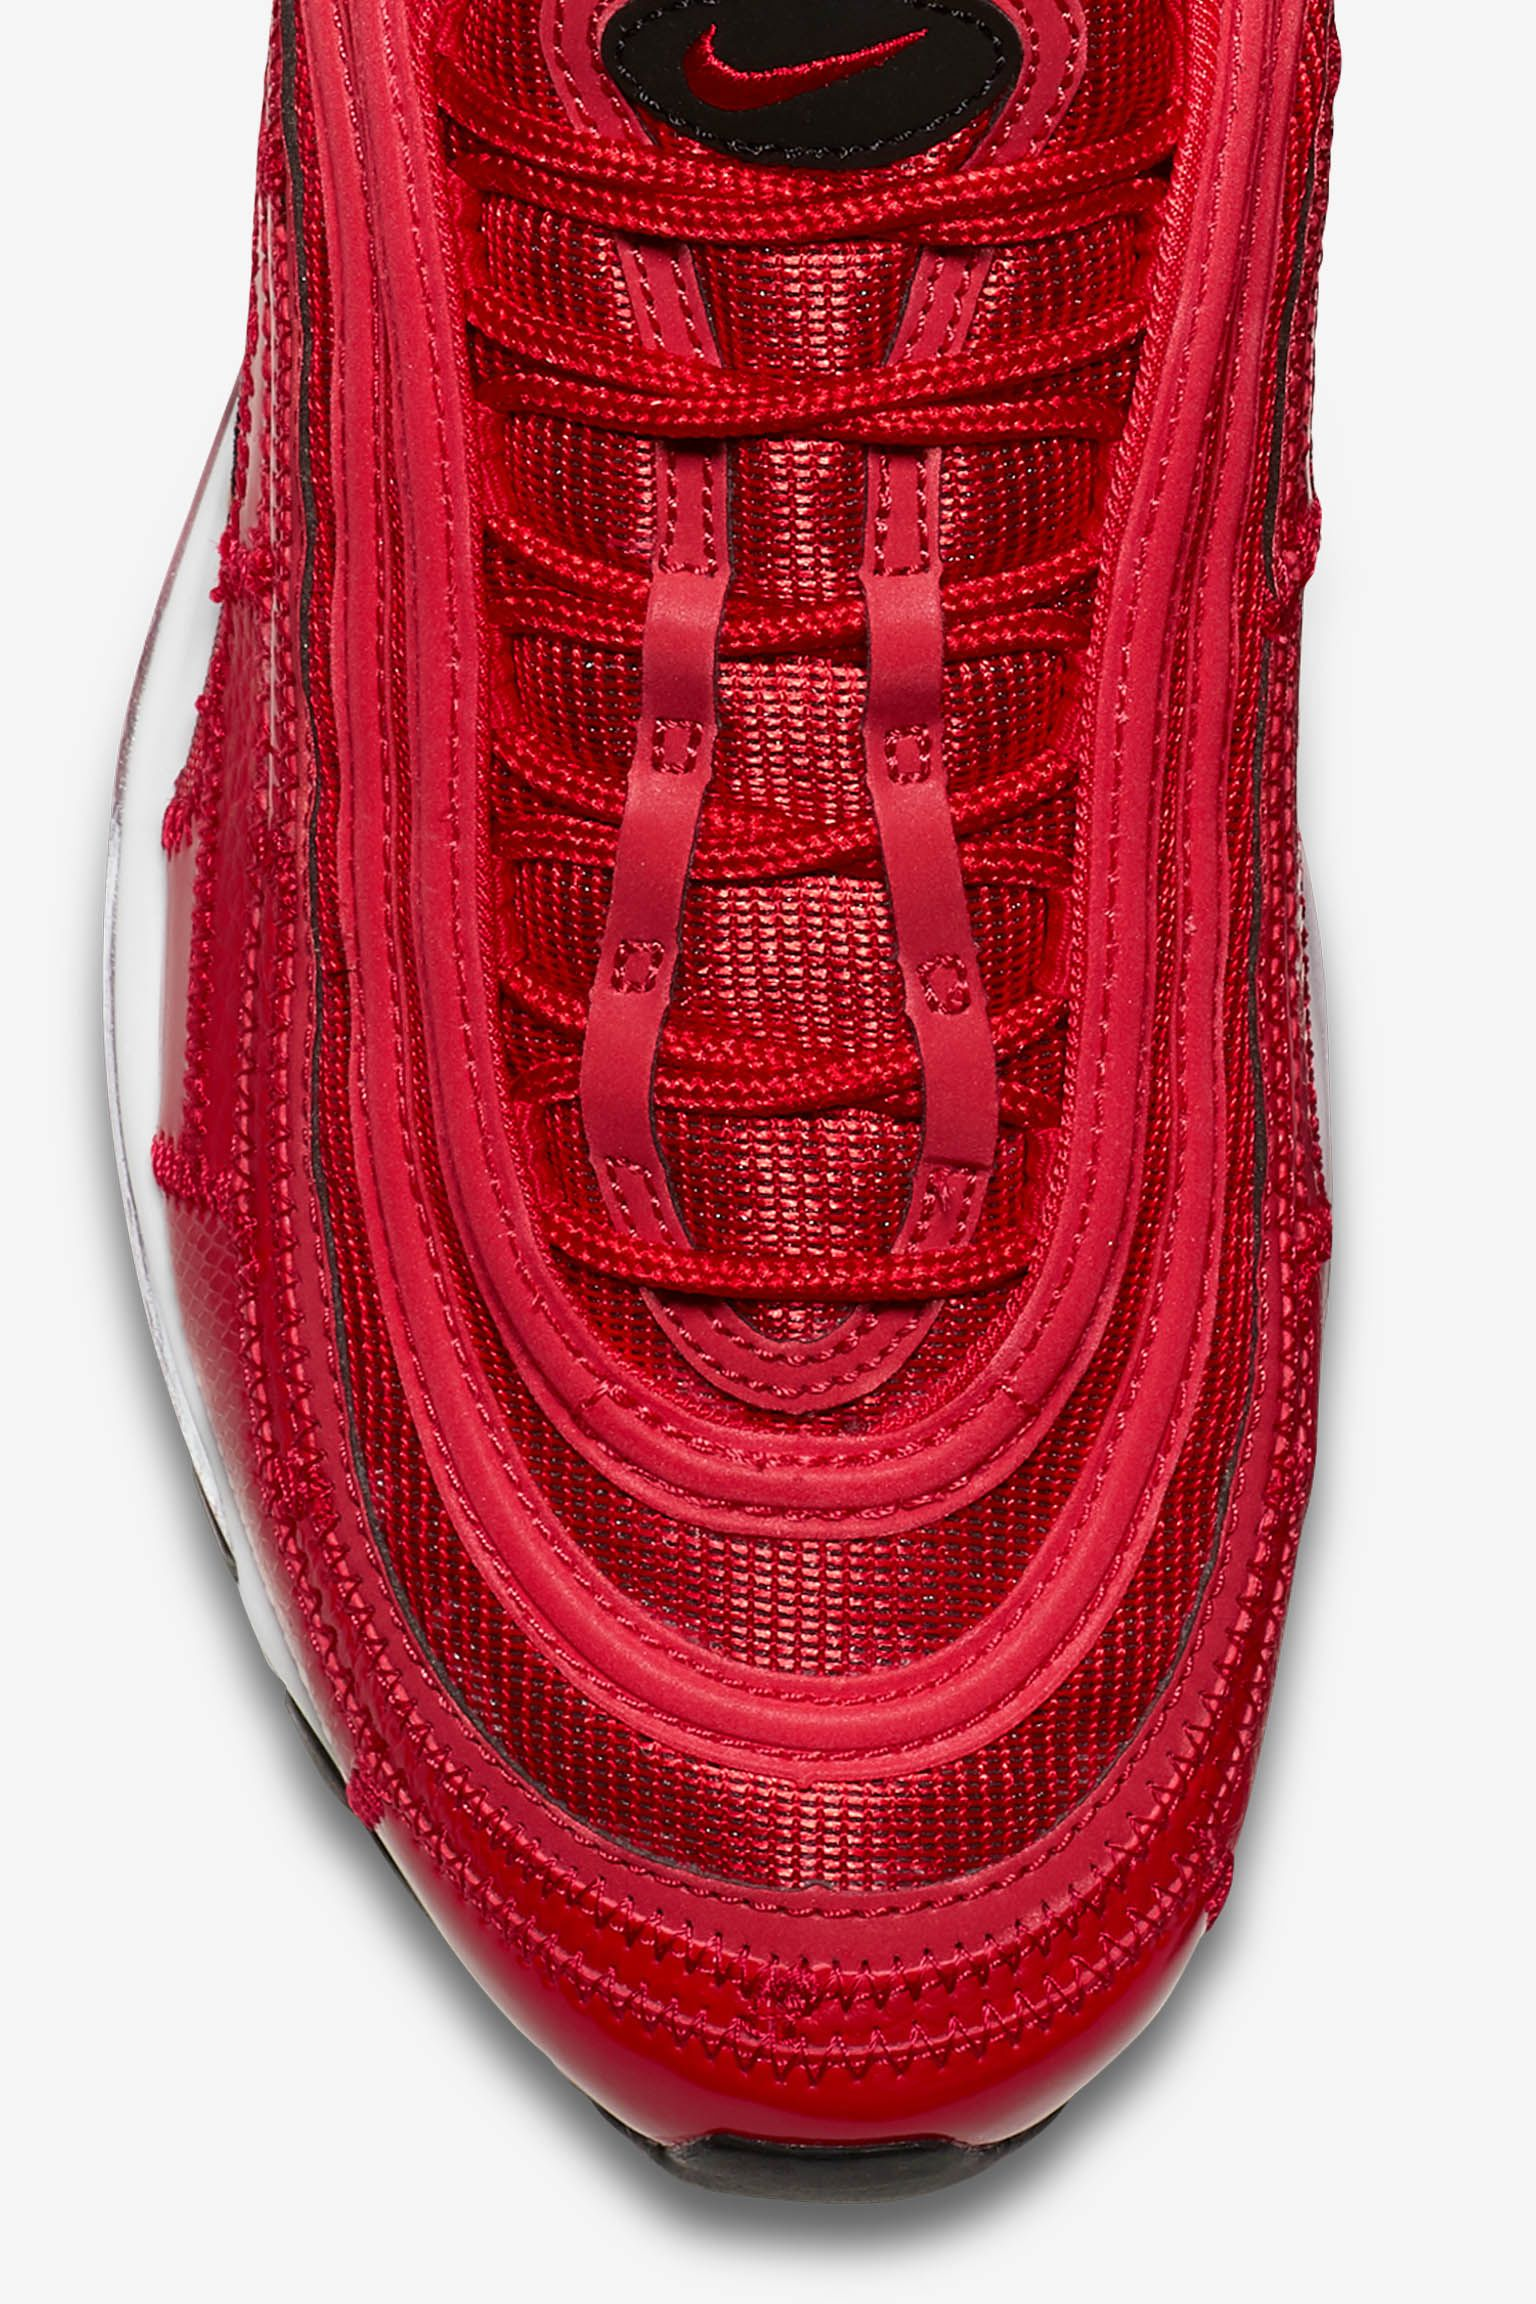 Nike Air Max 97 CR7 'Portugal Patchwork' Release Date